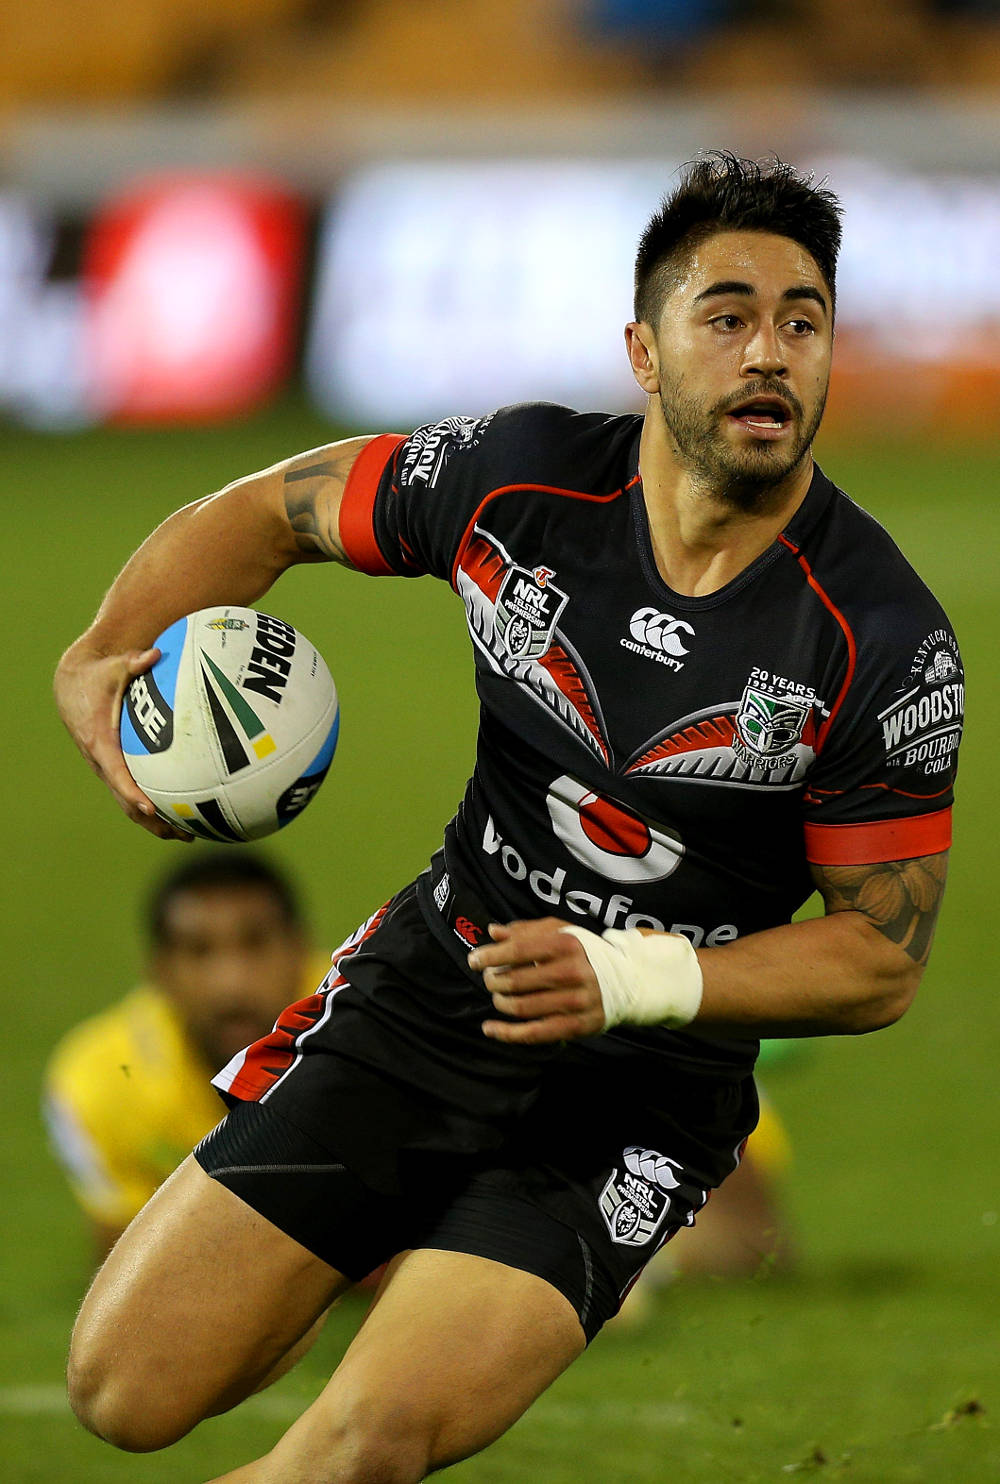 Shaun Johnson running with football